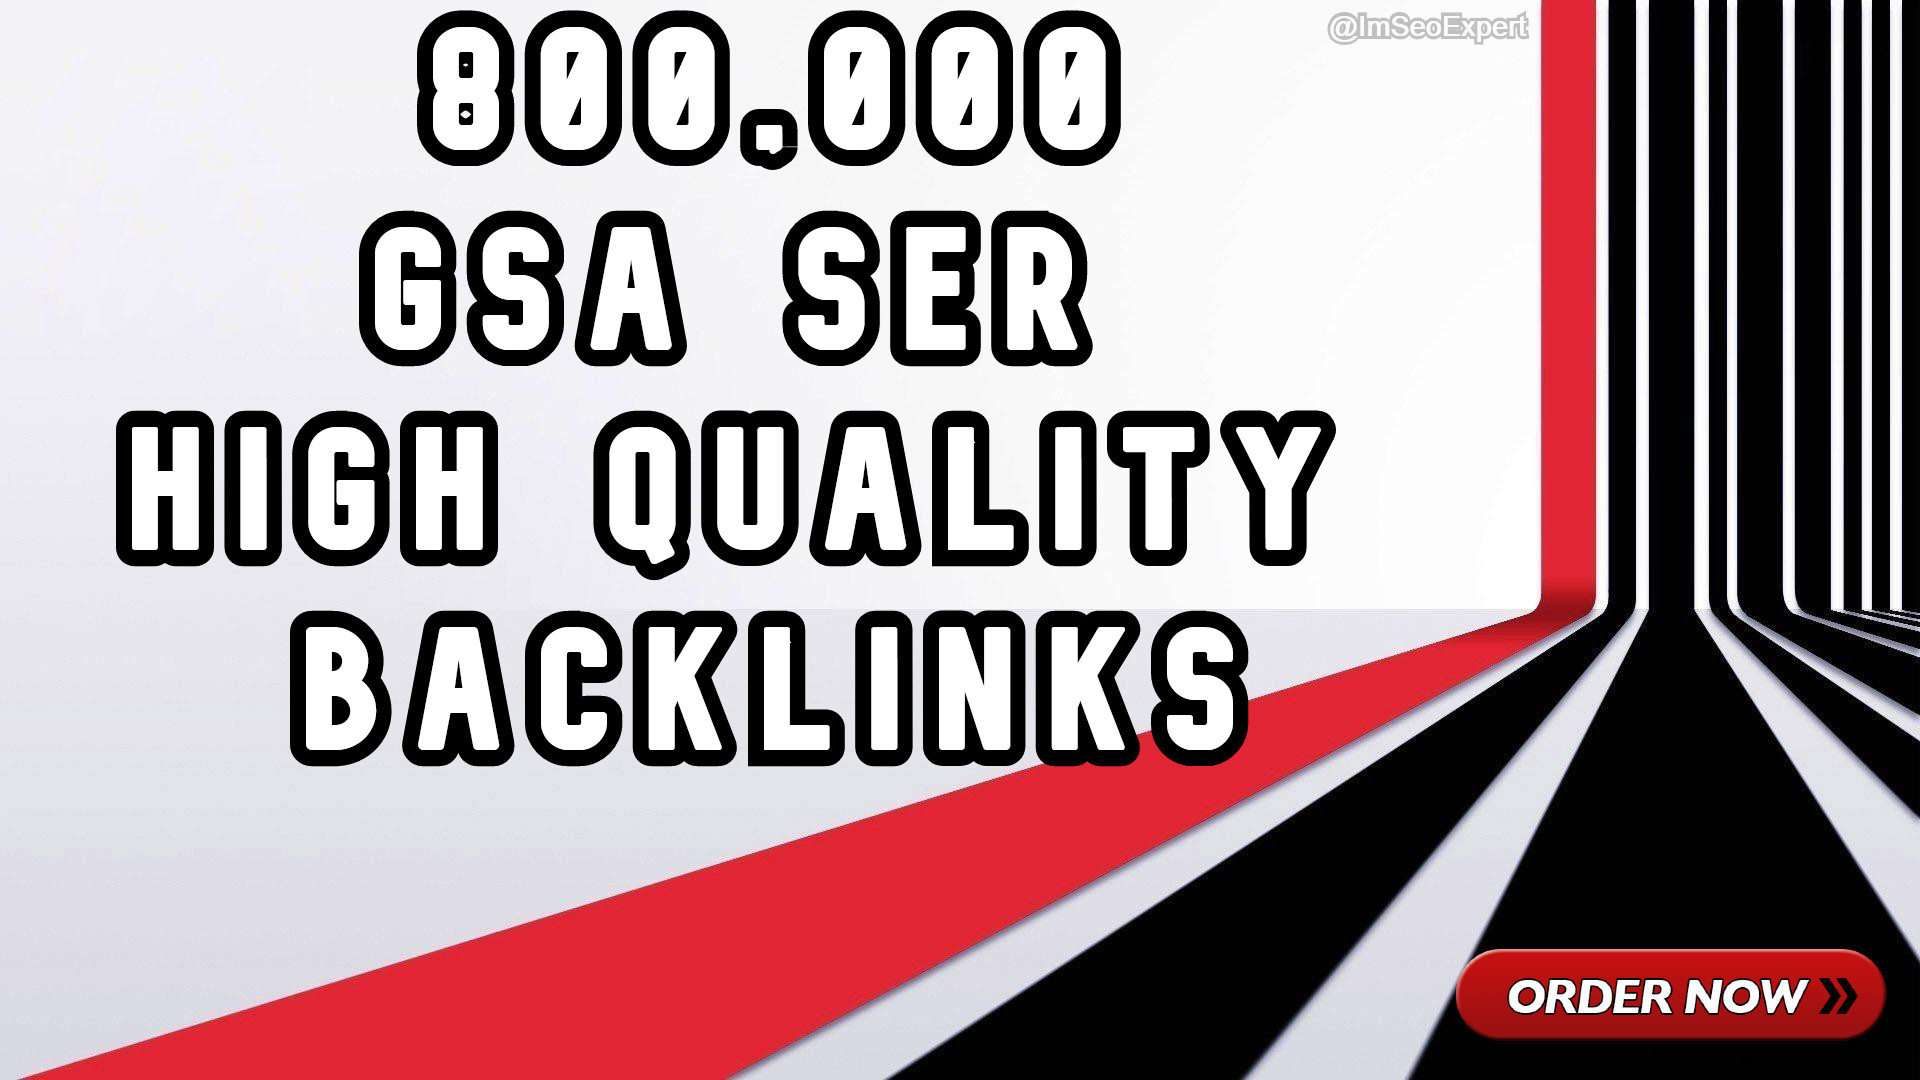 800,000 GSA SER High Quality BackLinks